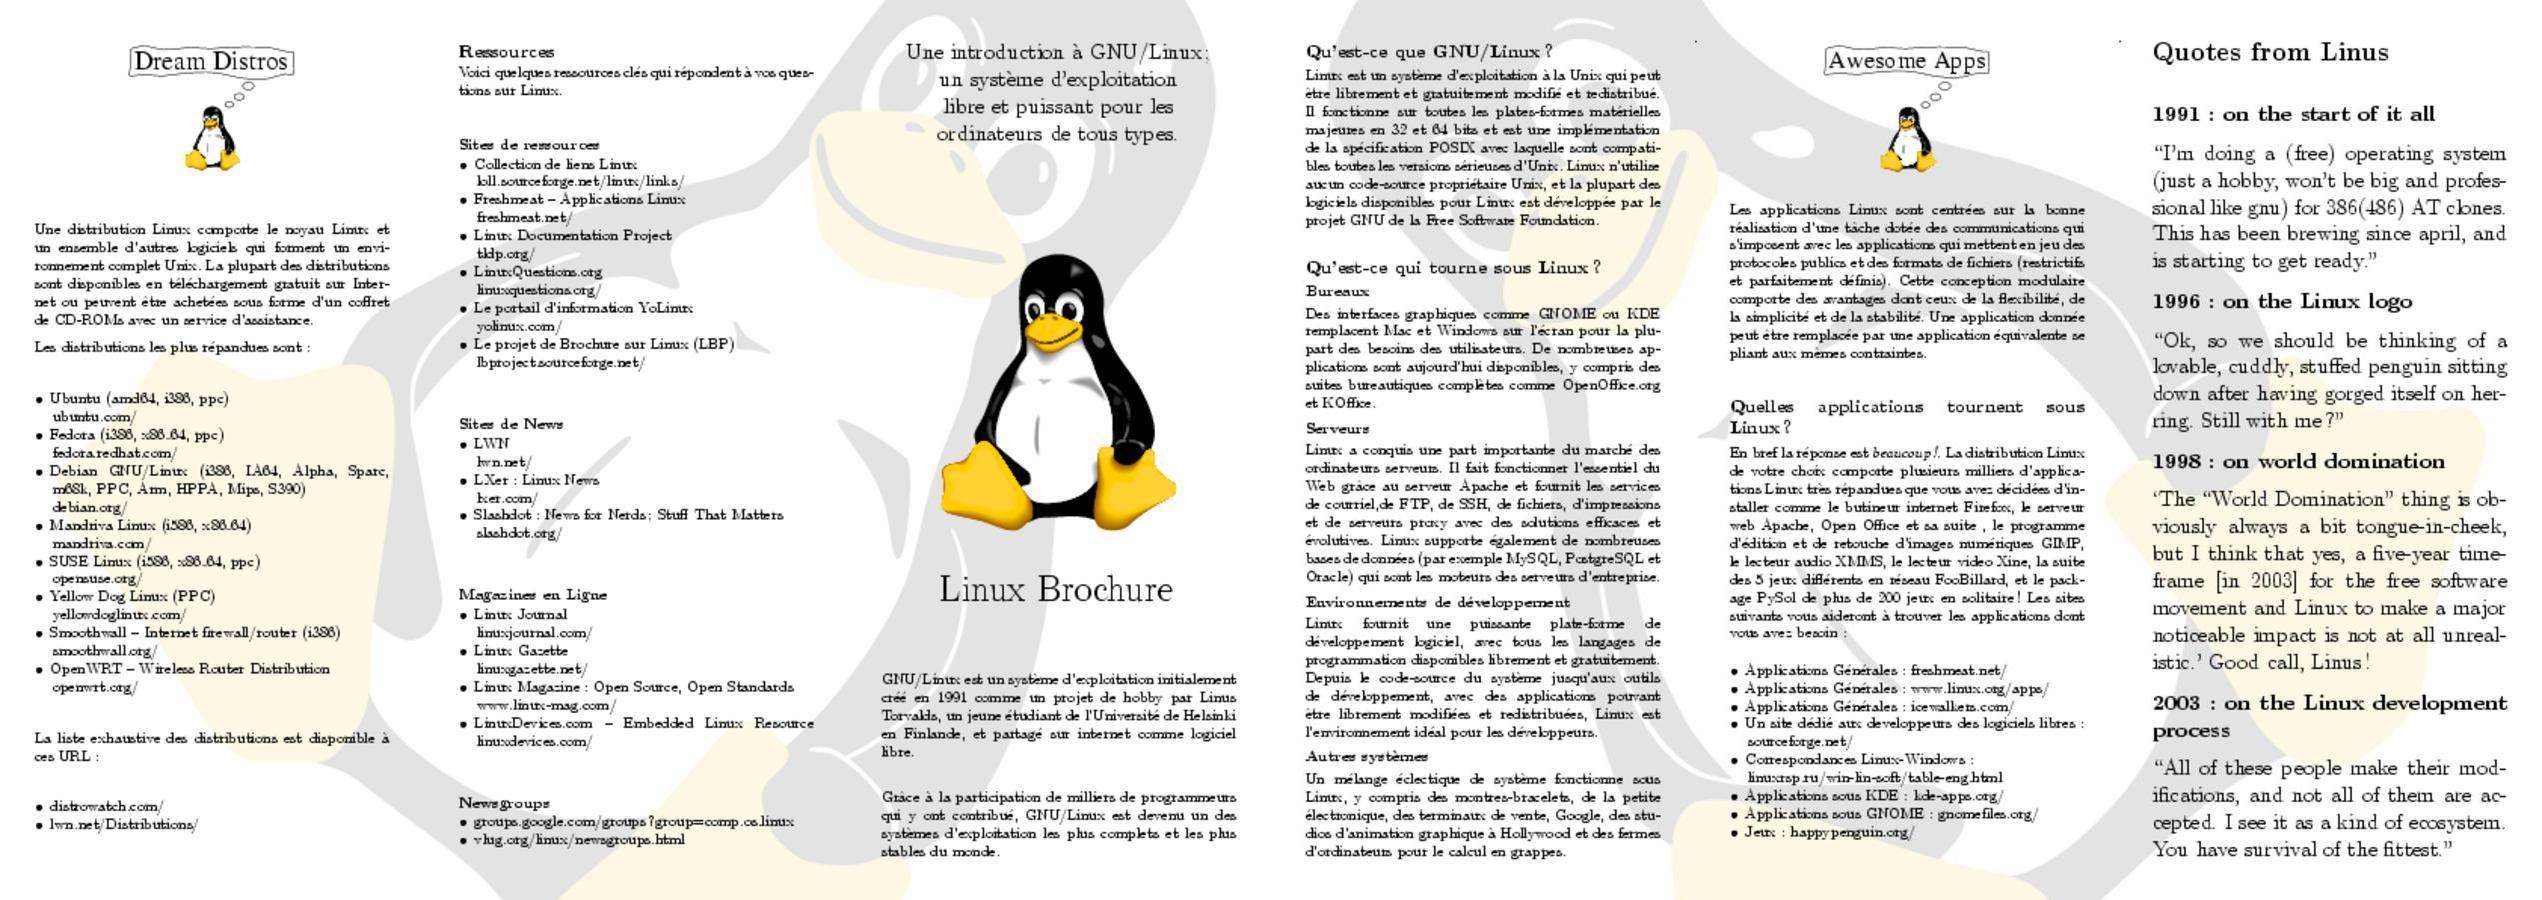 Linux Brochure Project: Examples